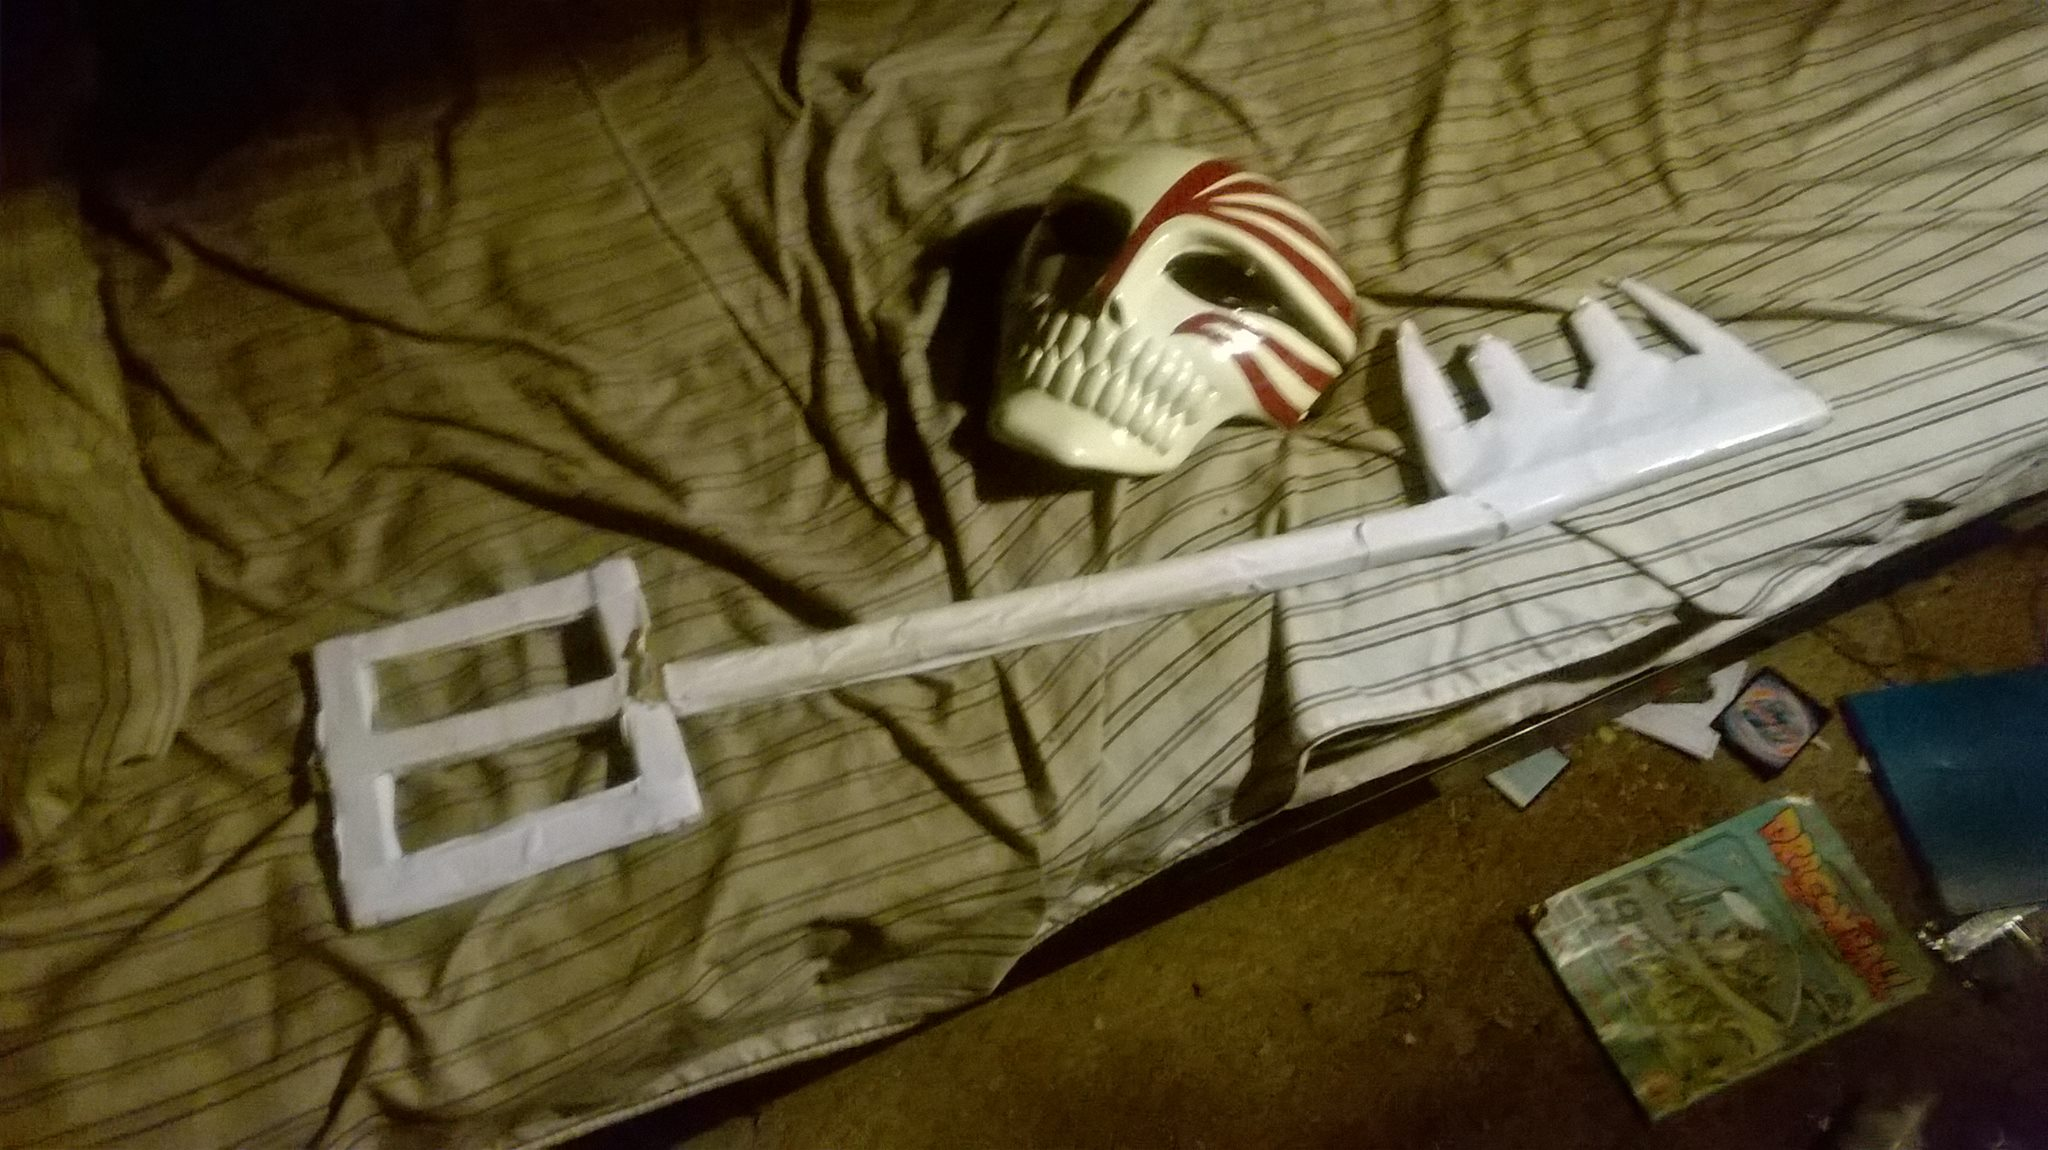 My Kingdom Hearts Keyblade and Bleach Hollow Mask